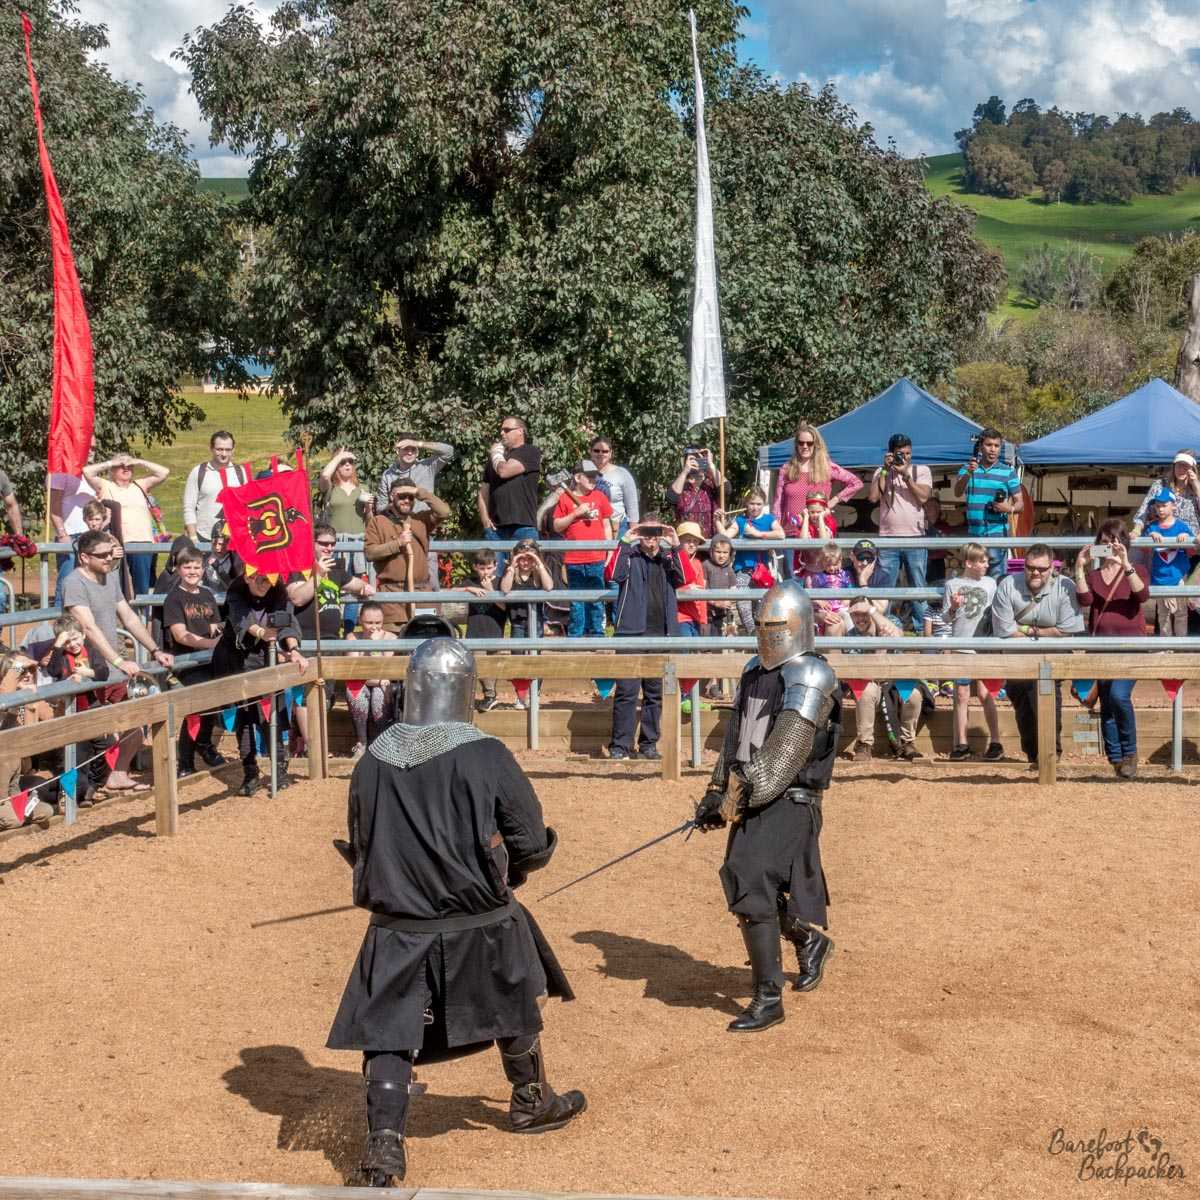 Battle scene at the Mediaeval Carnivale, Balingup